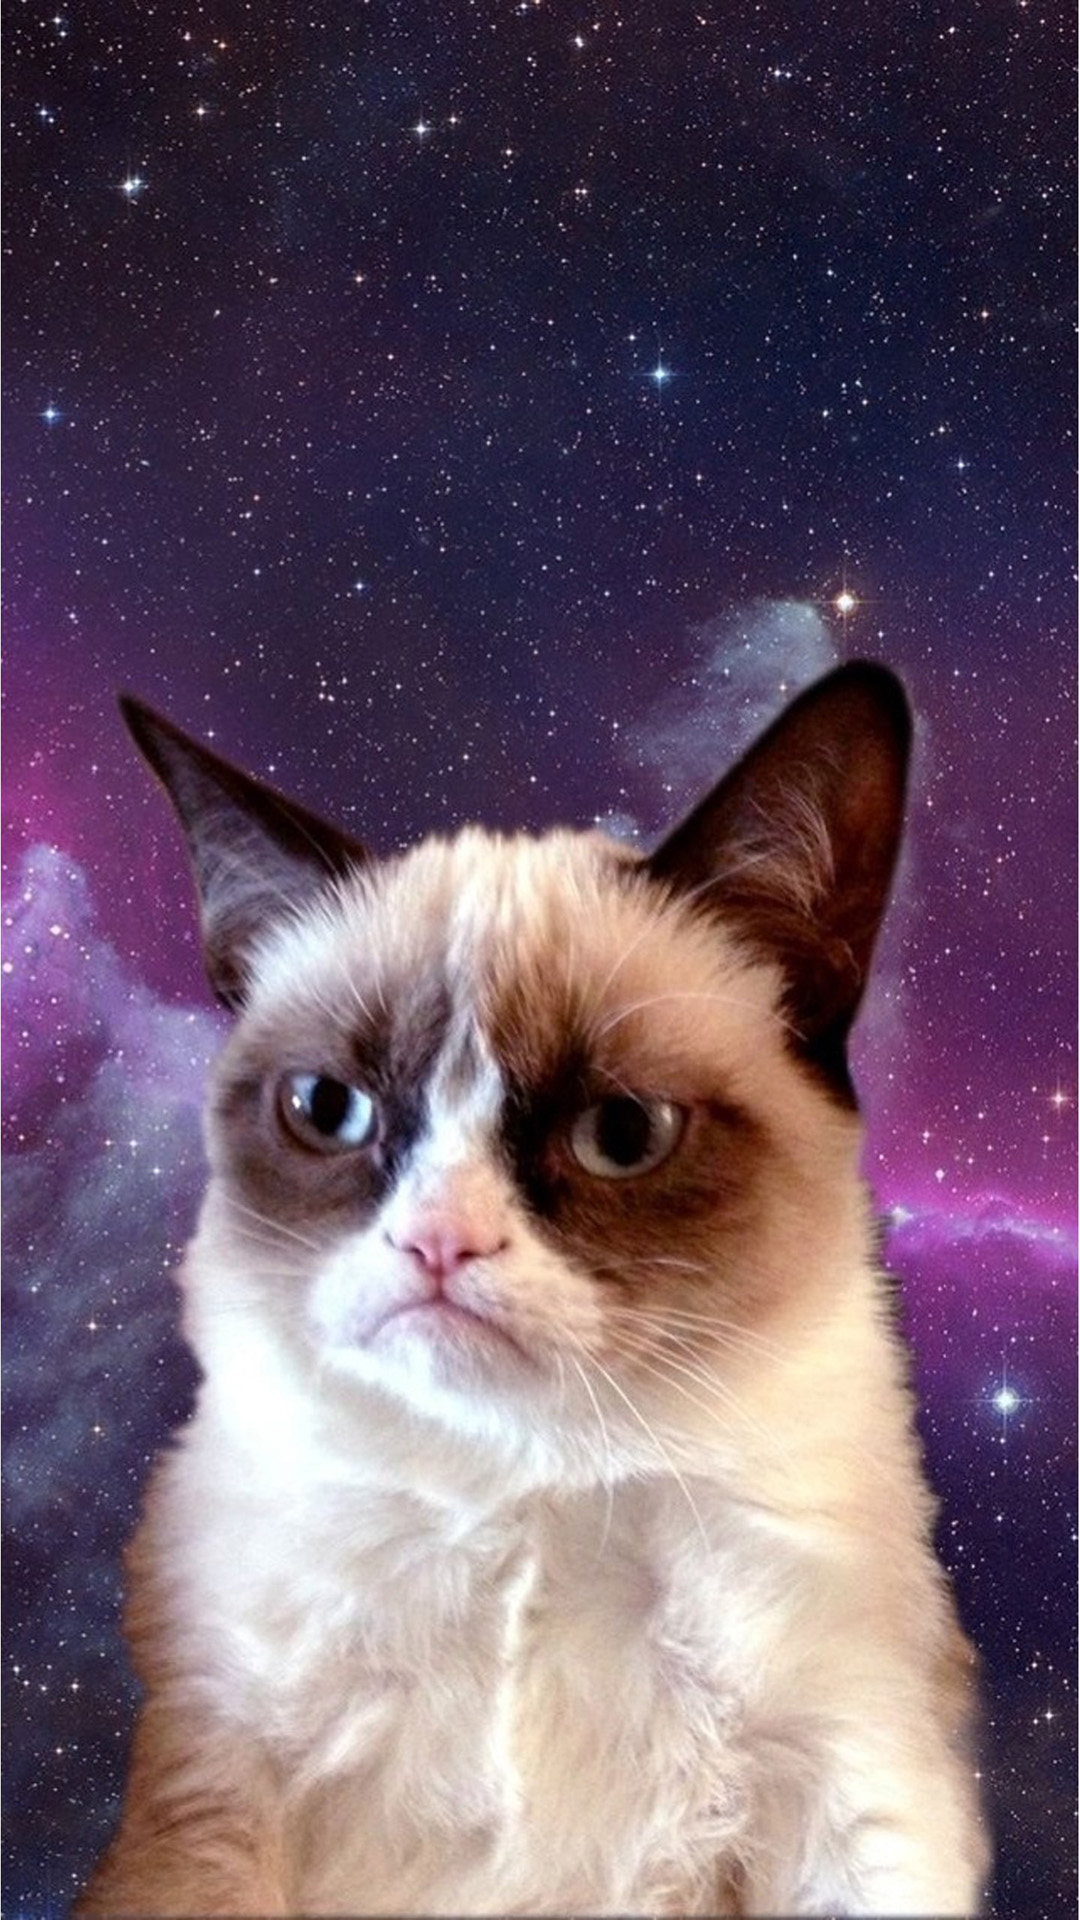 funny grumpy cat wallpapers images